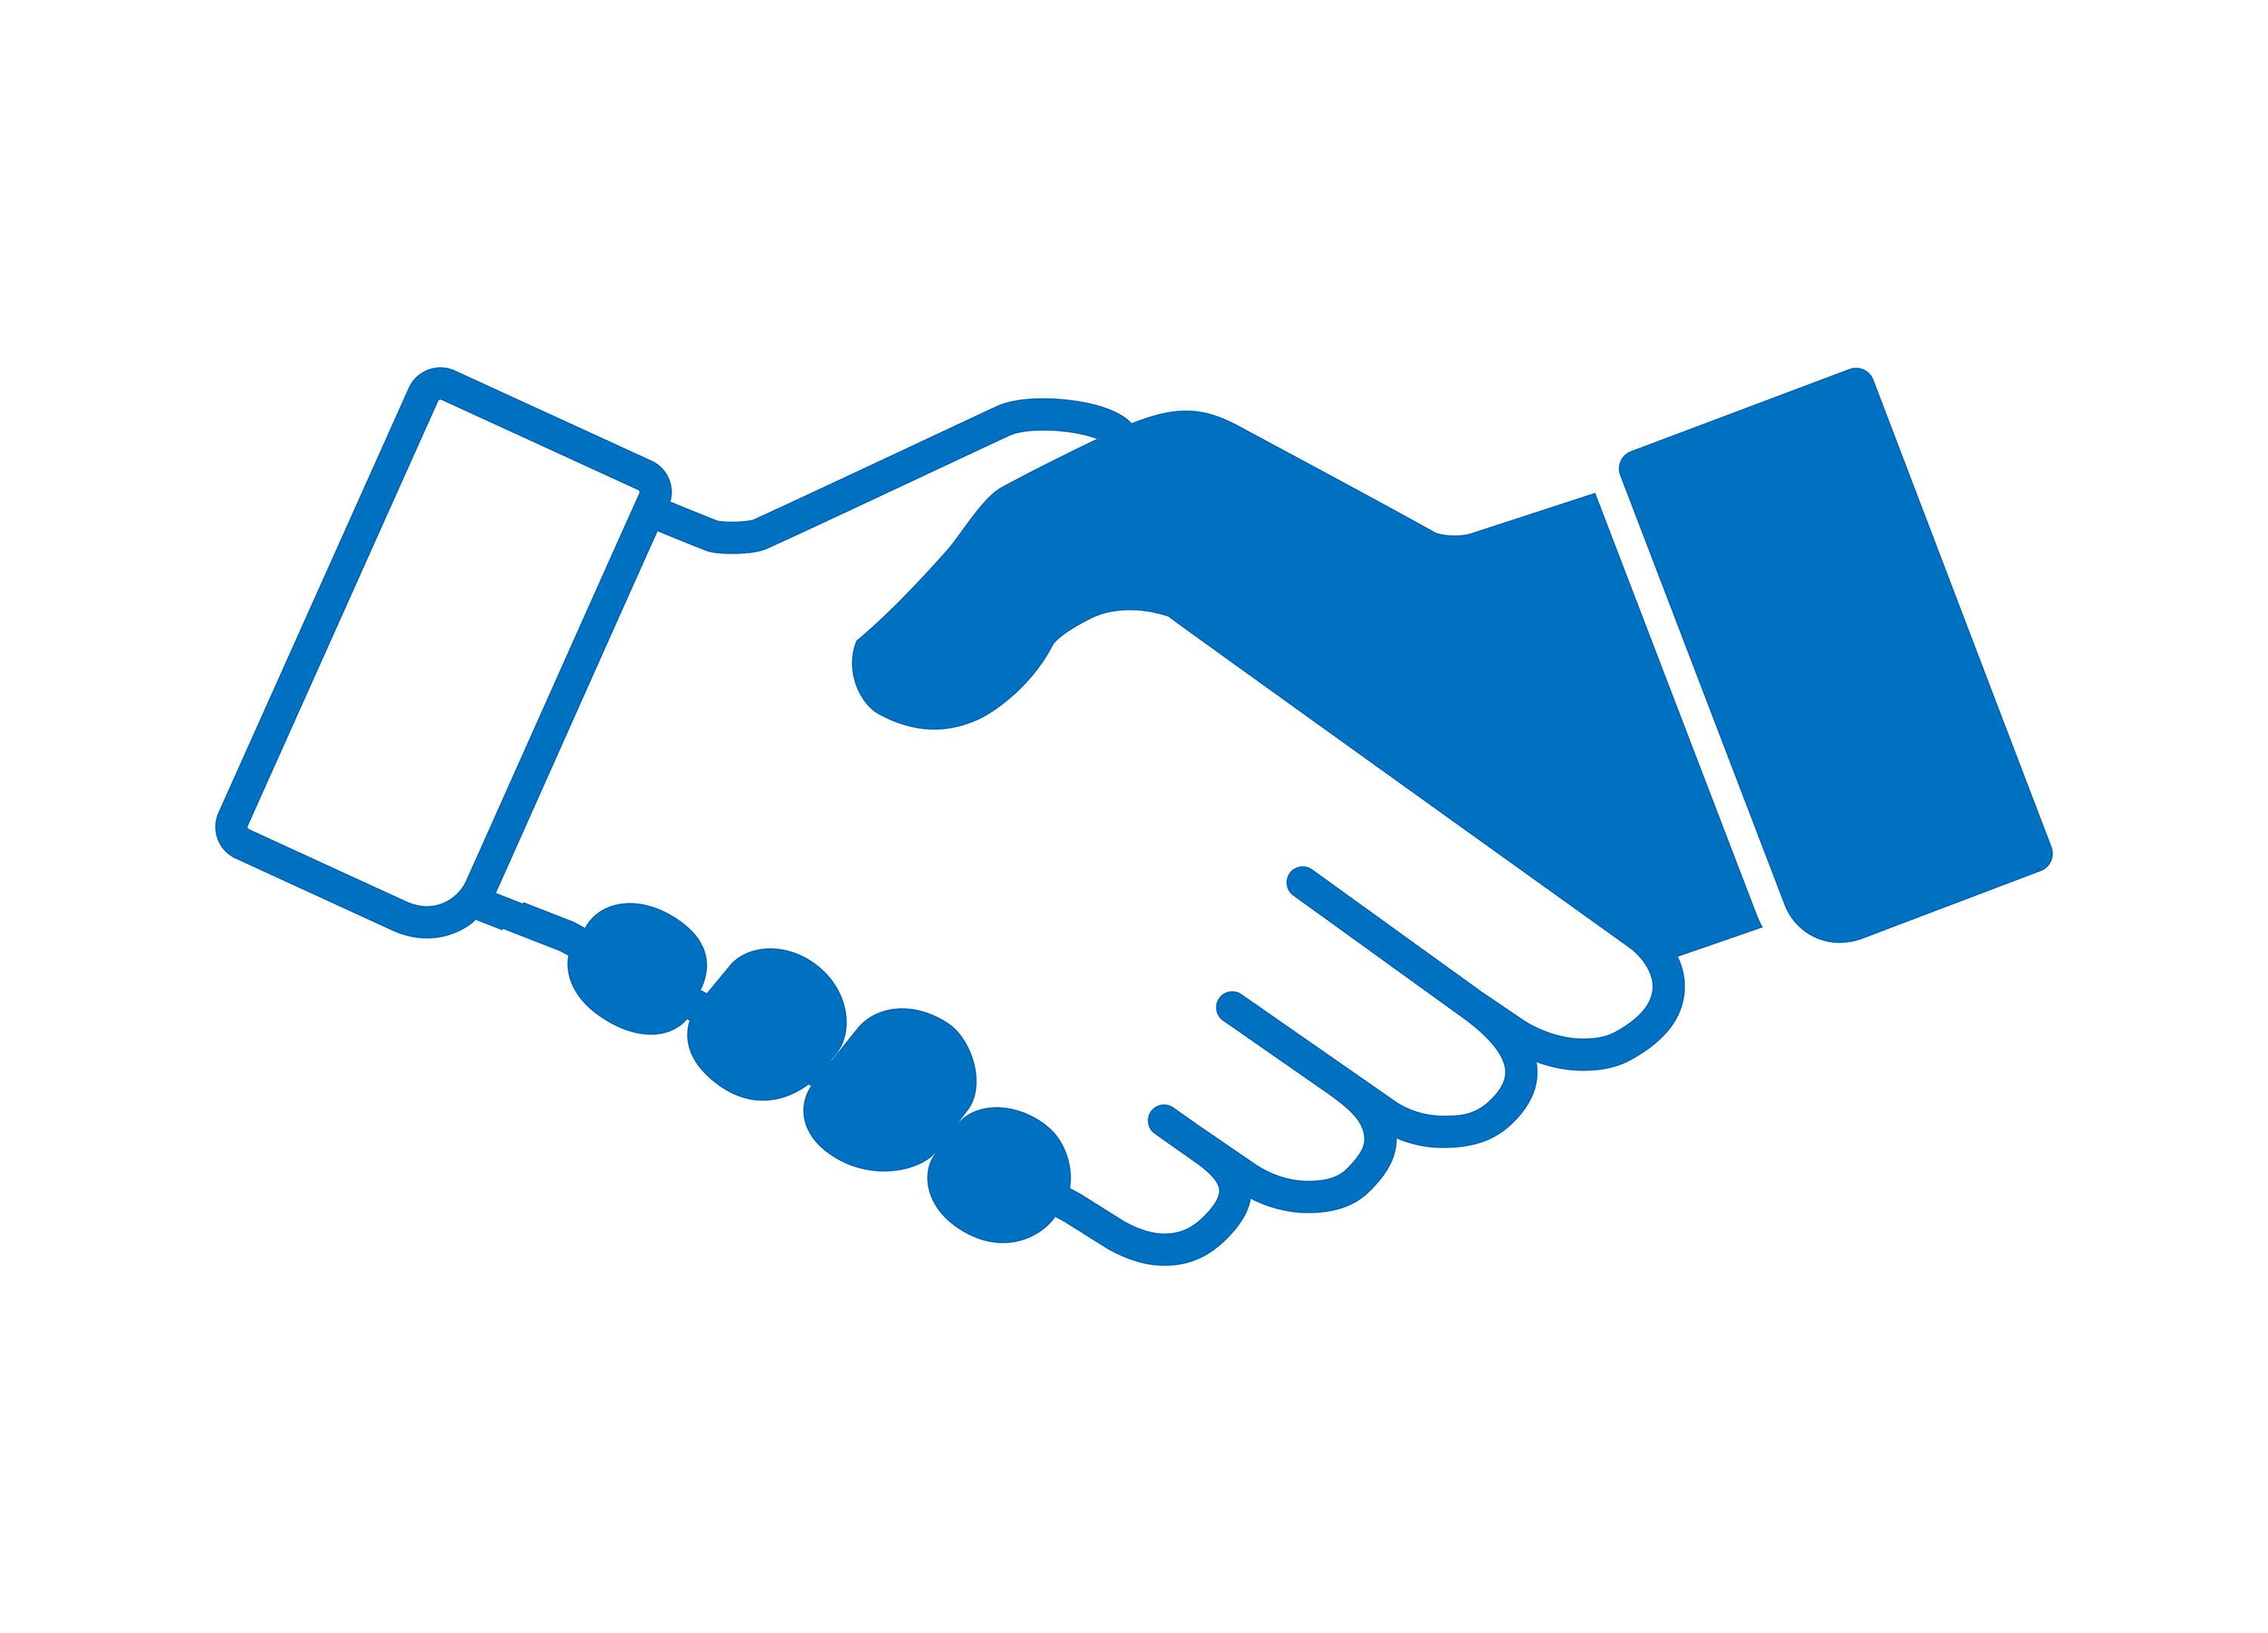 Vector Illustration of Handshake Icon-1-1-1.png